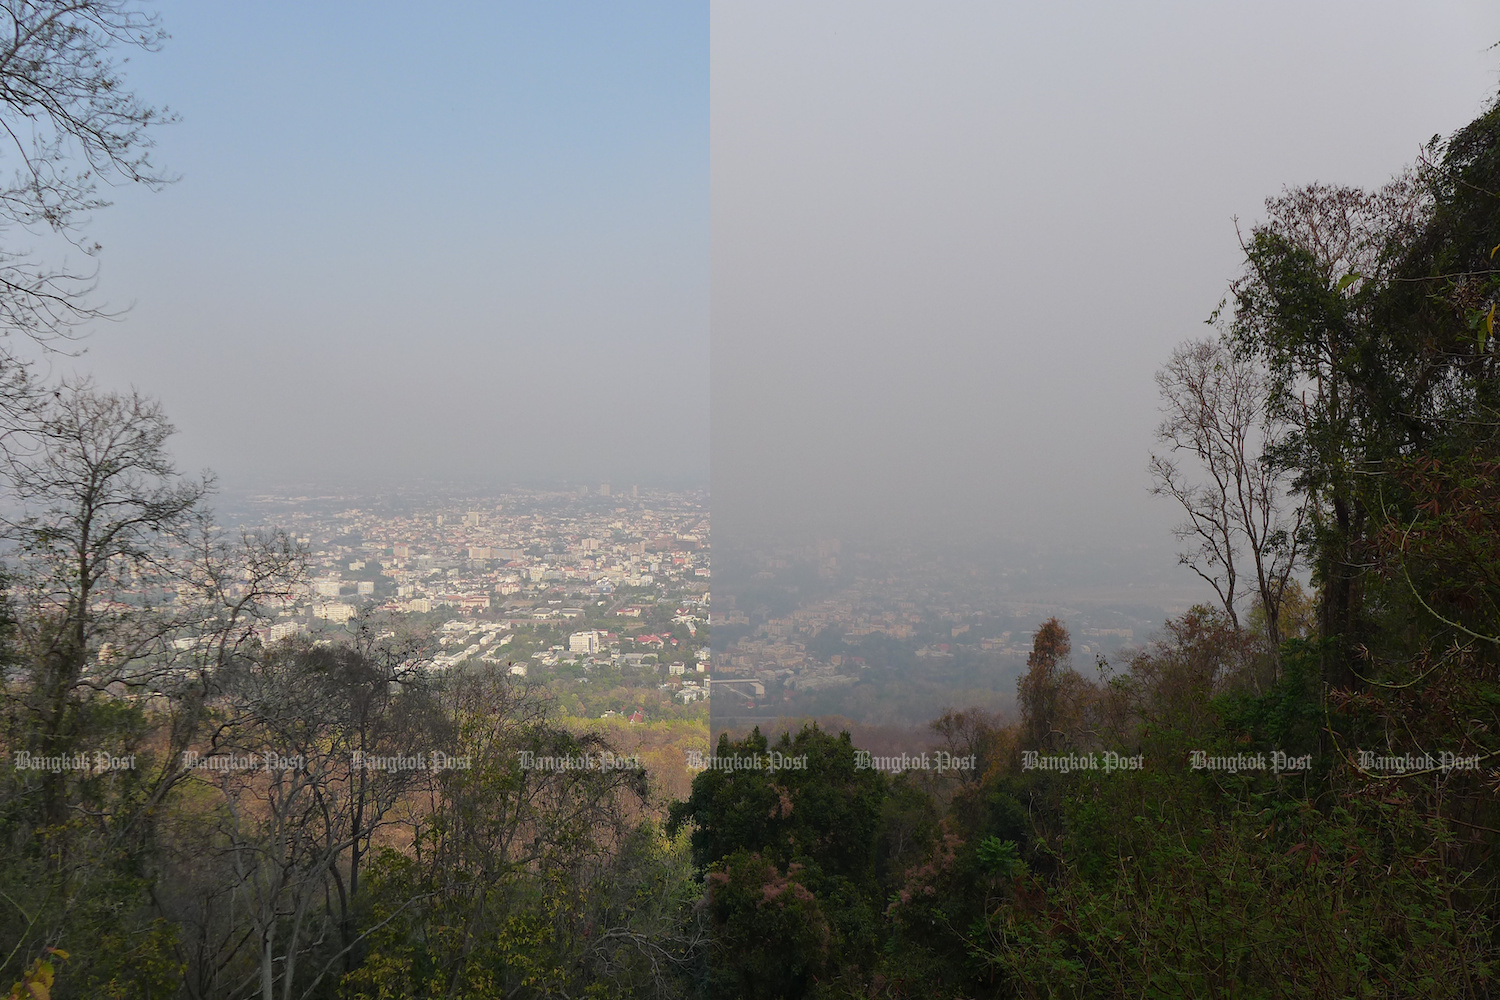 Composite showing Chiang Mai city as seen from Doi Suthep on March 5 and March 10 2021, when the PM2.5 level was 70.9 and 114.4 respectively. Photo by Gary Boyle